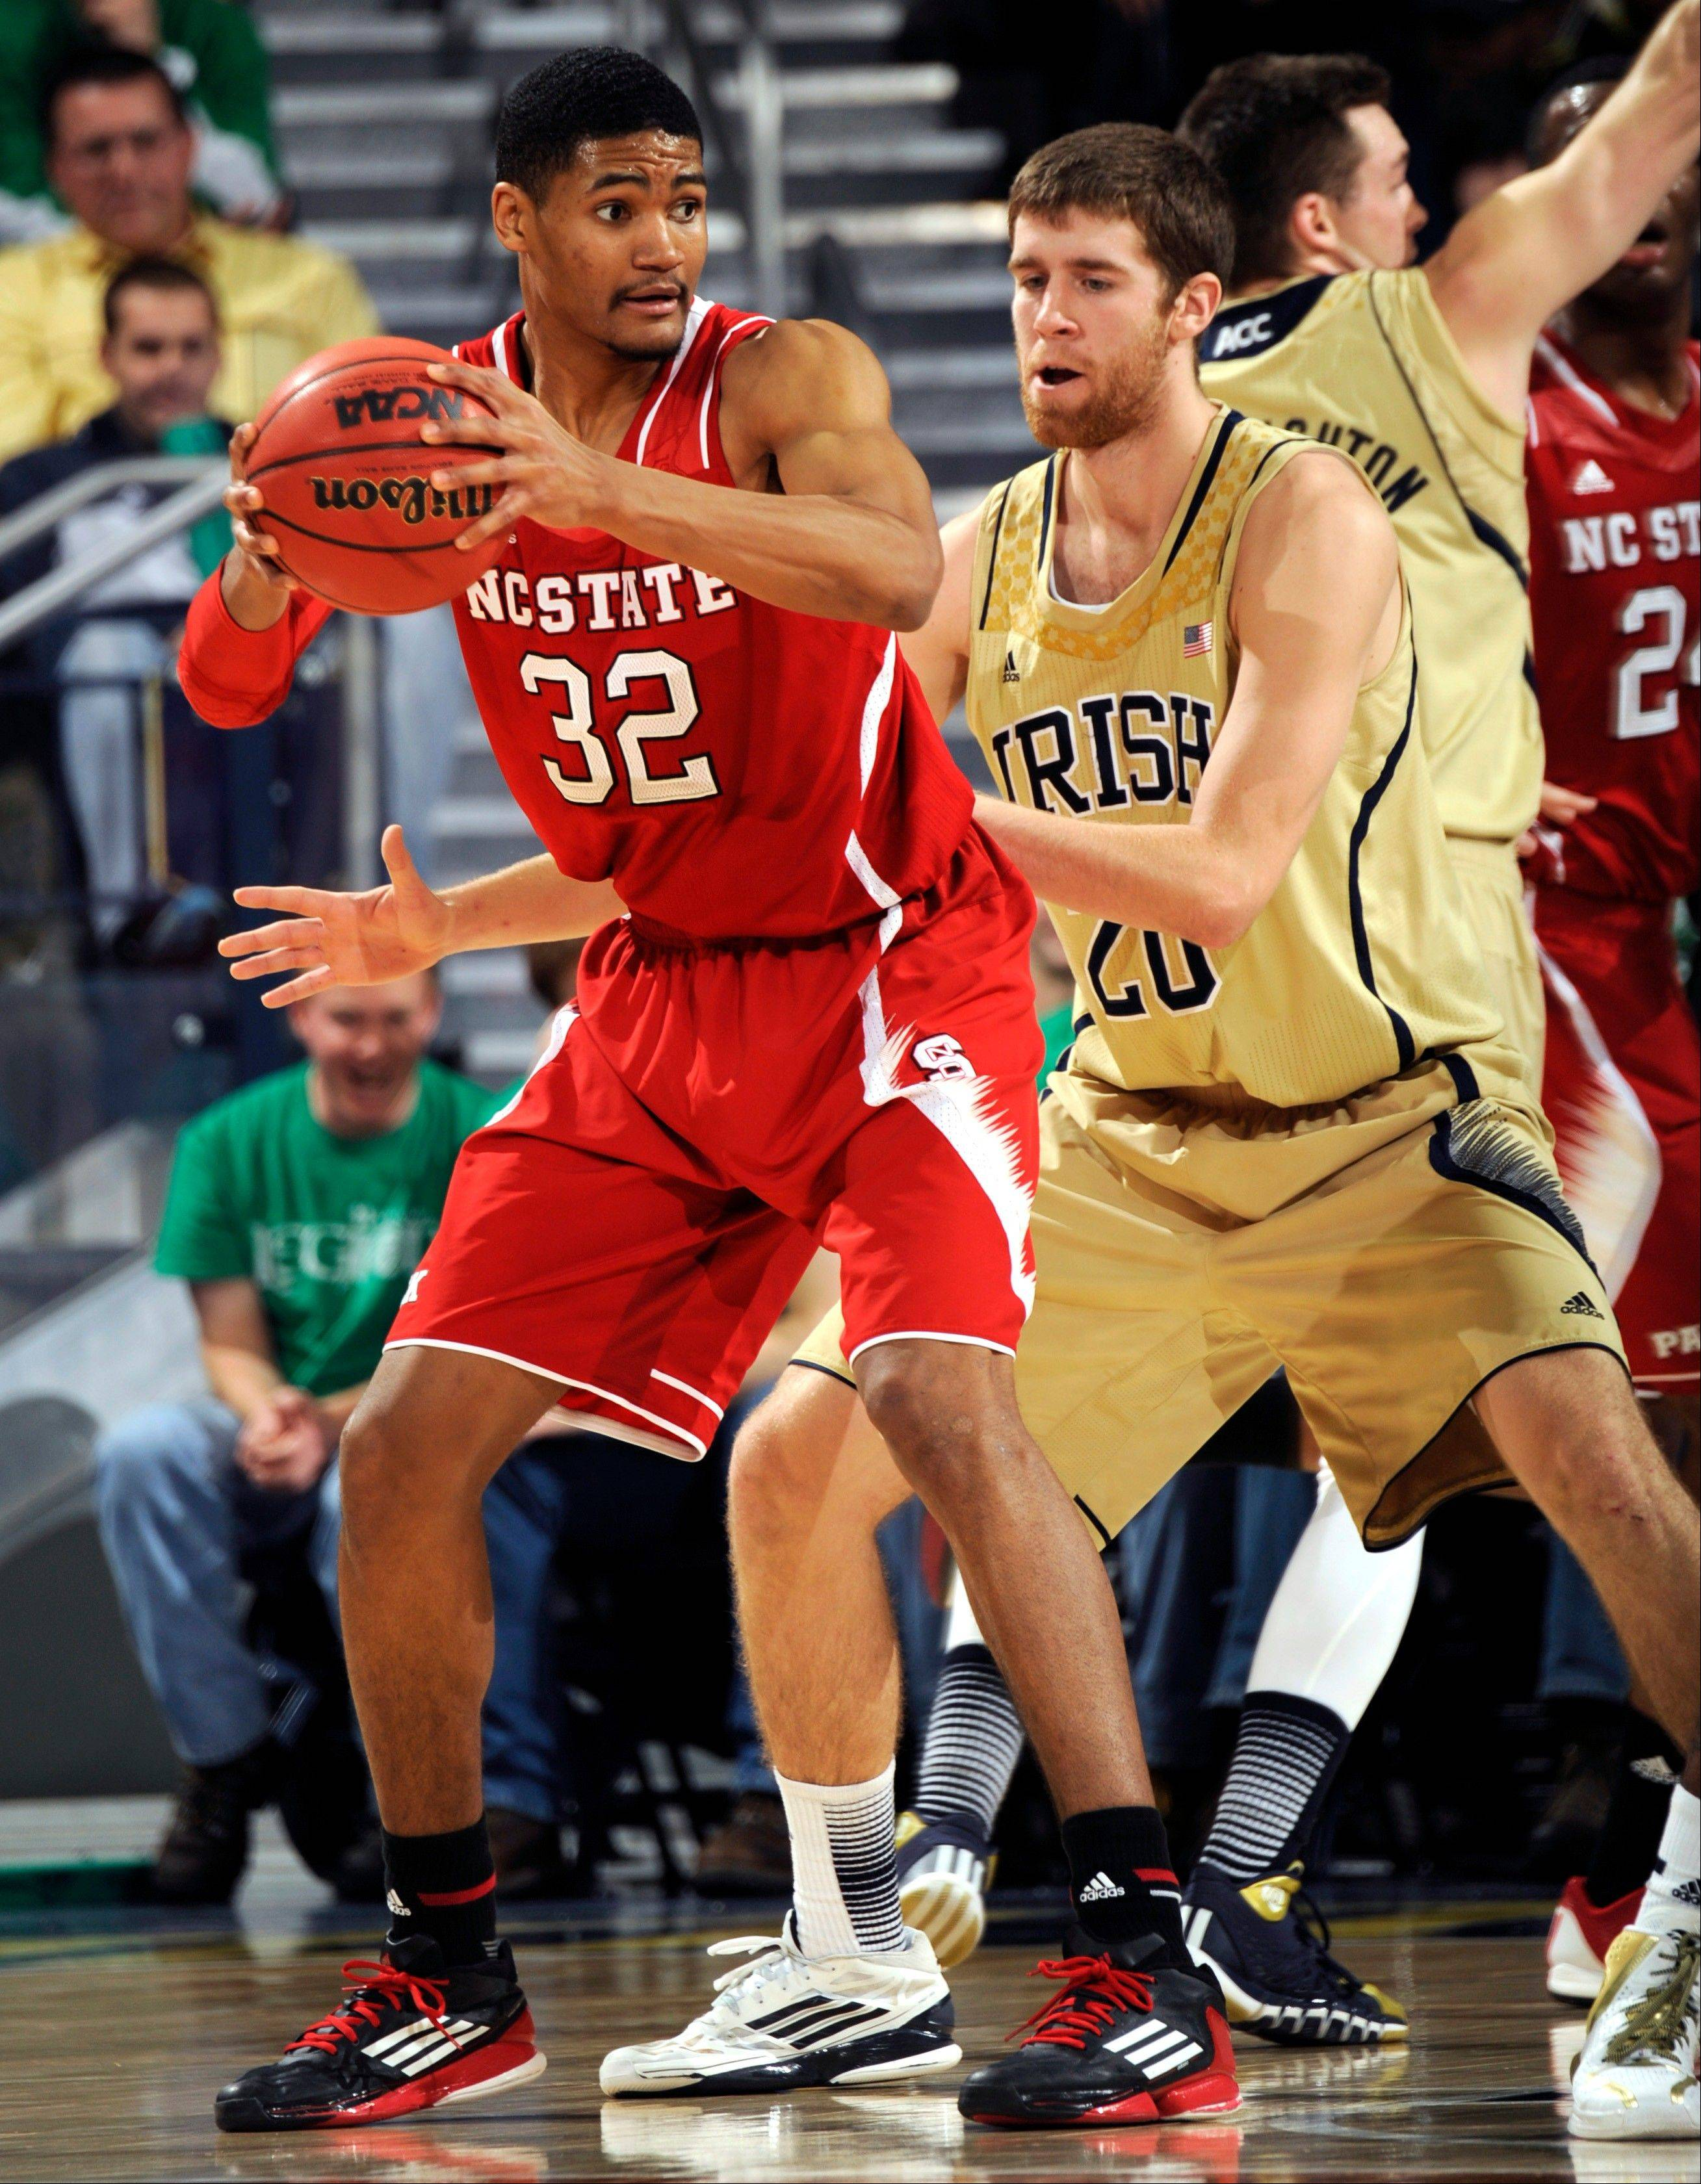 North Carolina State forward Kyle Washington (32) posts up with Notre Dame guard Austin Burgett in the second half of an NCAA college basketball game, Tuesday, Jan. 7, 2014, in South Bend, Ind.